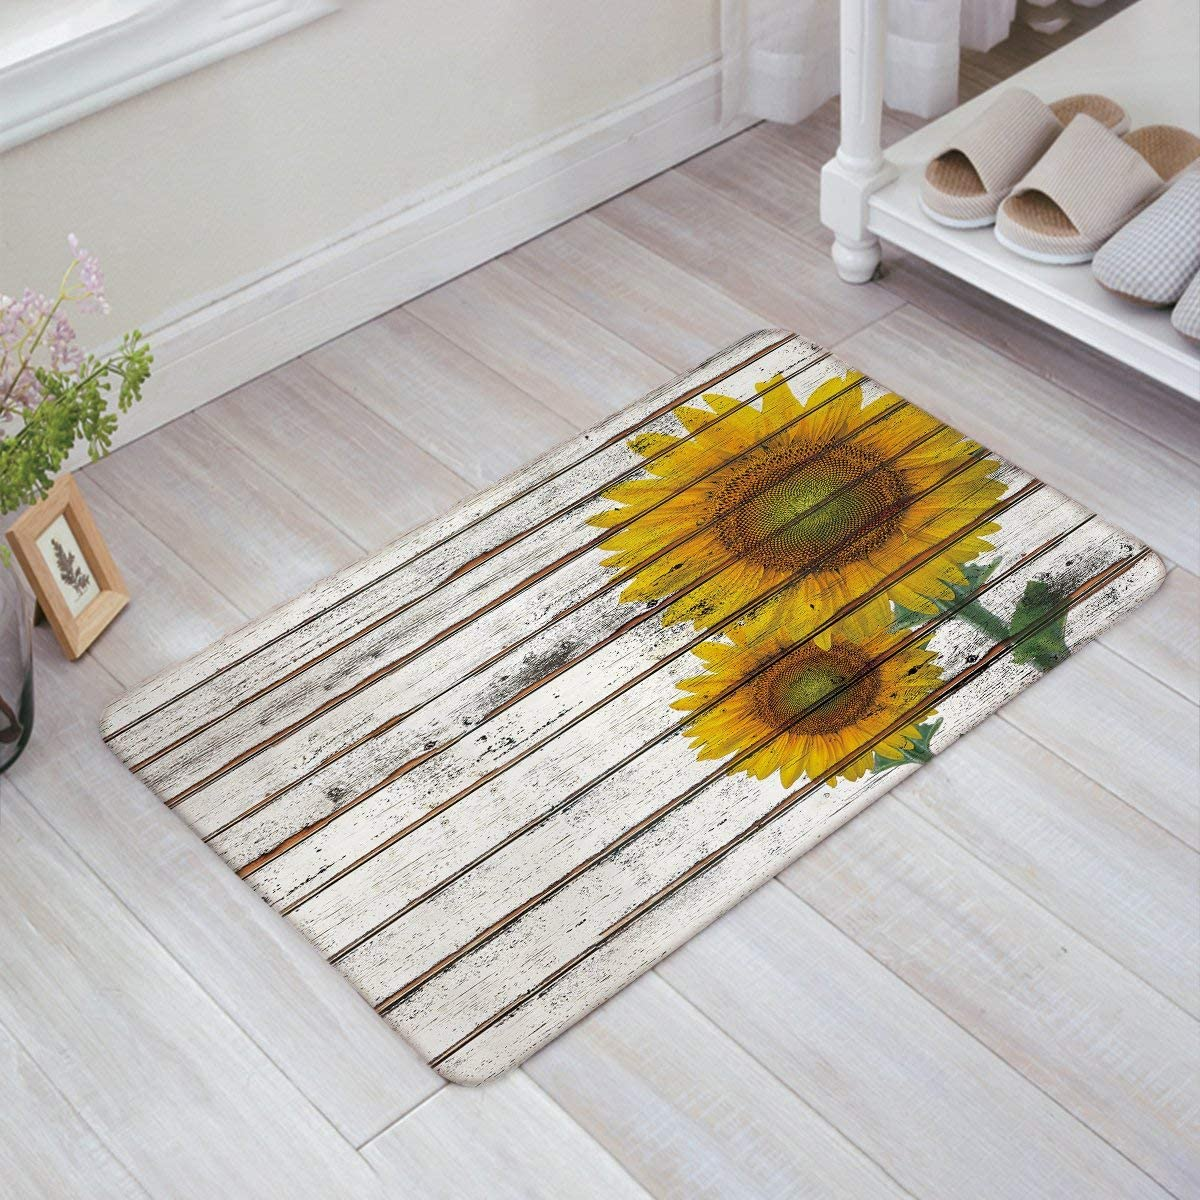 KAROLA Non-Skid Slip 20 x 32 Door Mat Sunflower on Wooden Board Modern Thin Low Pile Machine Washable Indoor Bathroom Kitchen Hallway Entry Rugs